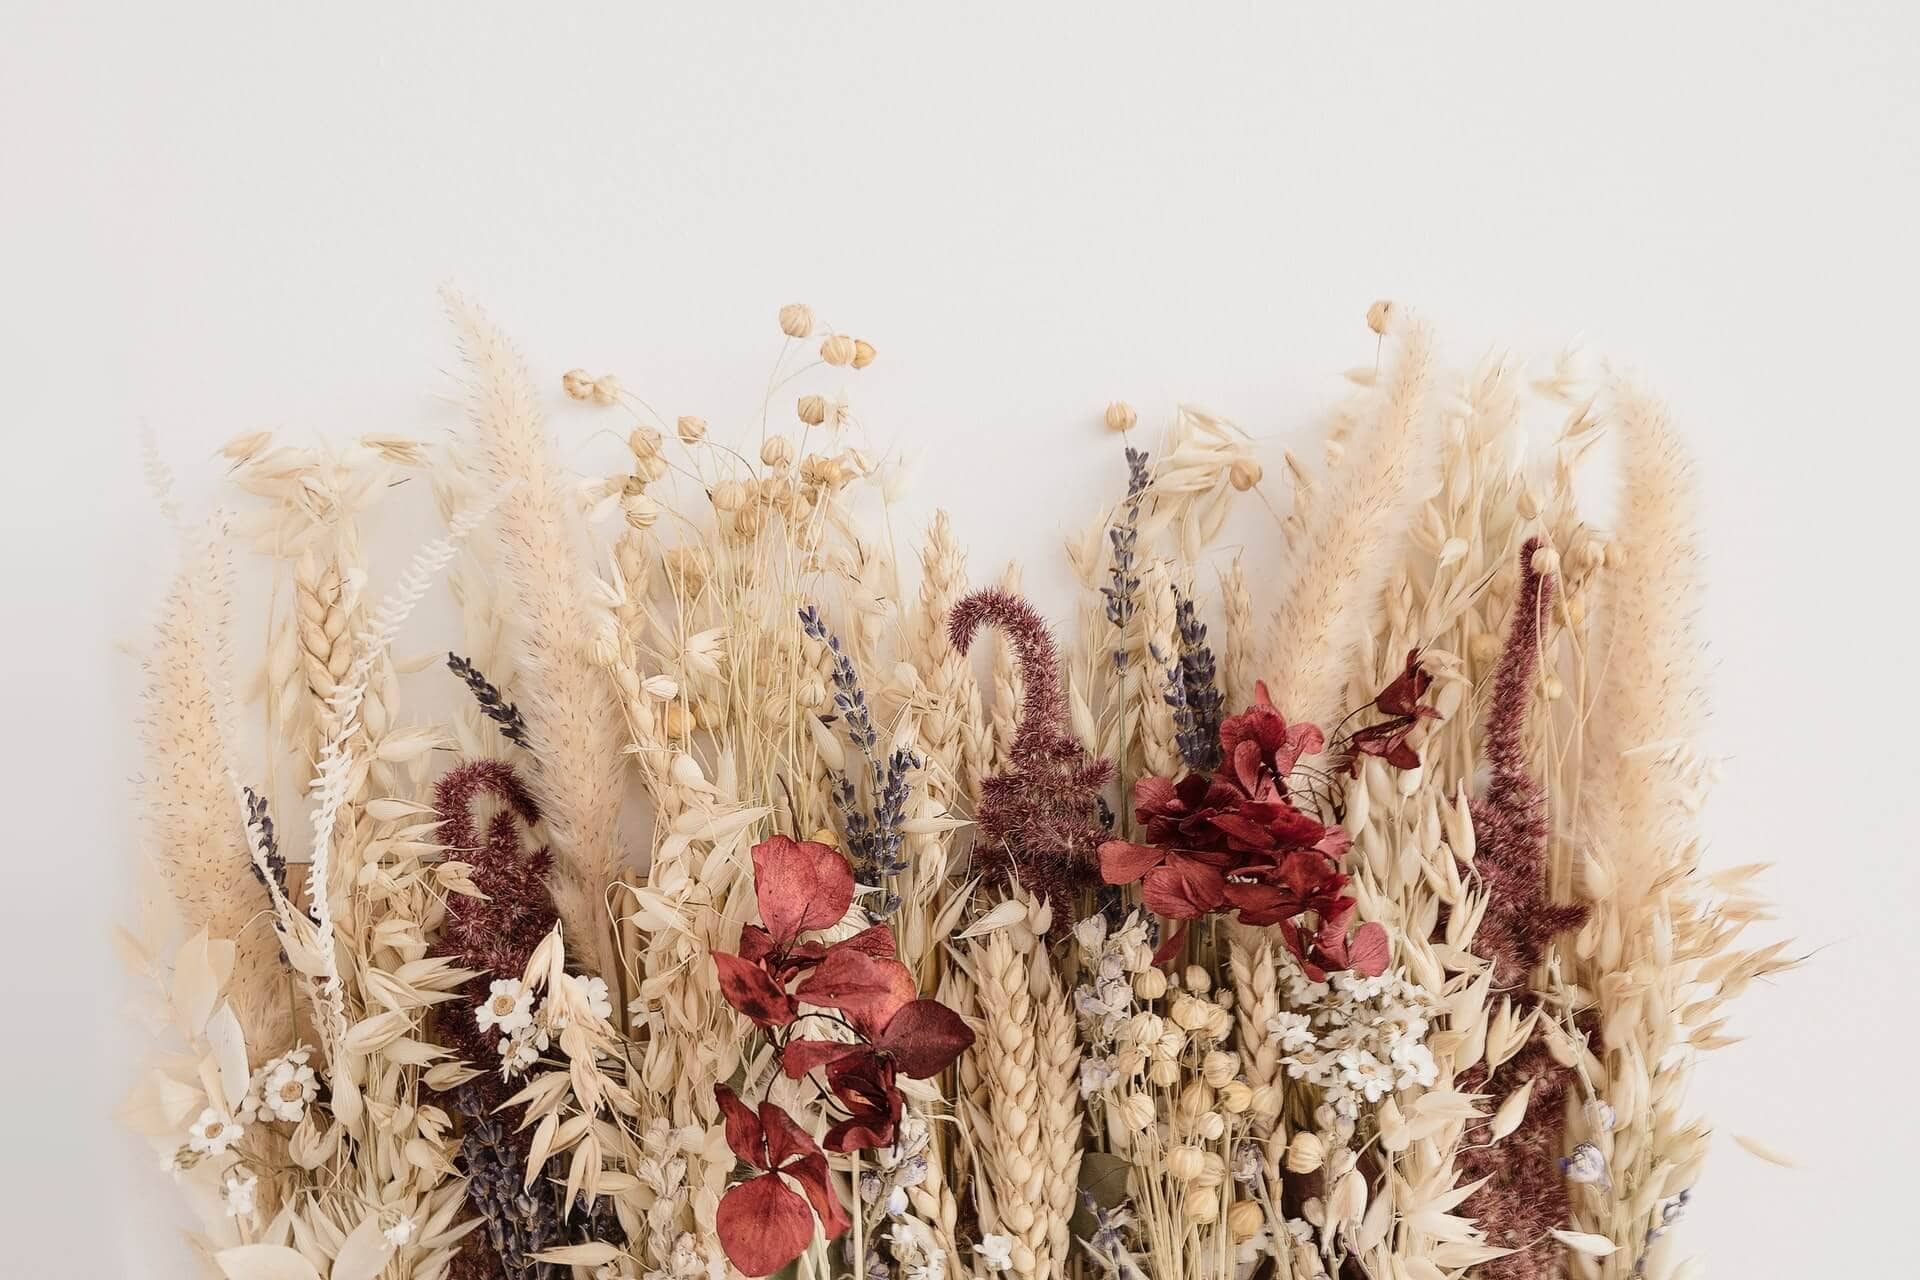 10 Best Florists For Dried Flowers In New York City Petal Republic